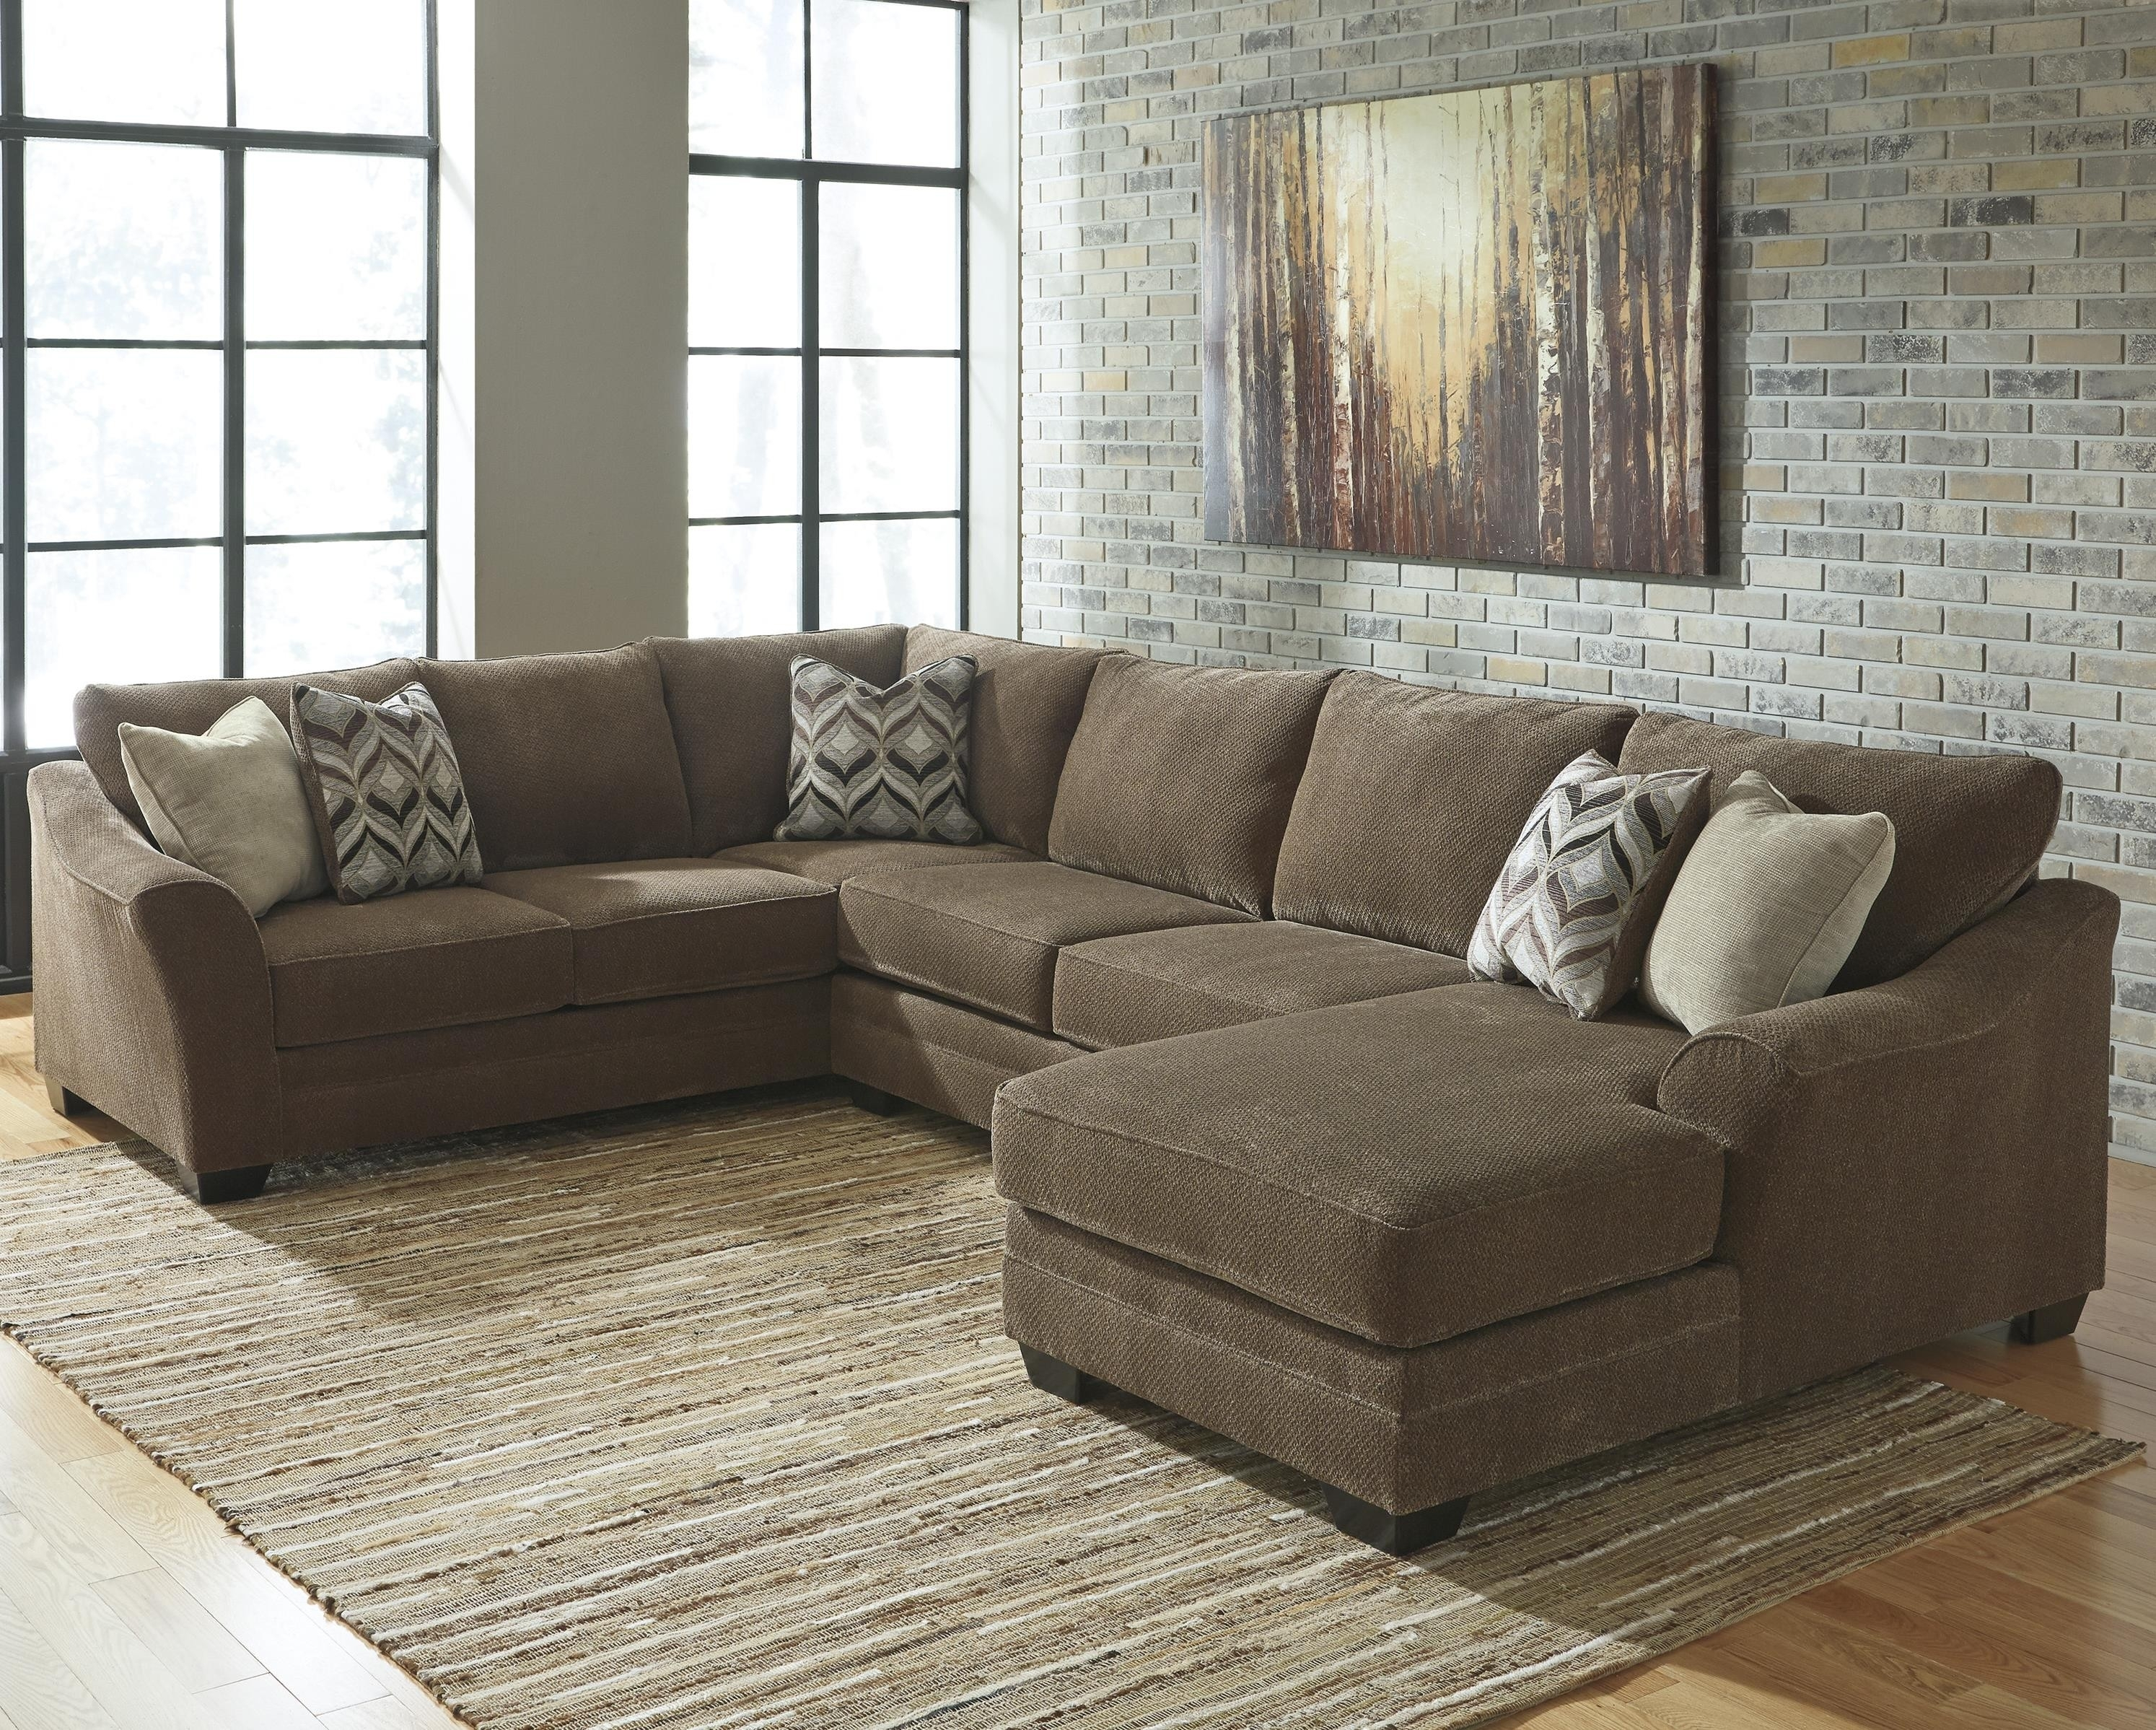 Lovely Vaughn Sectional Sofa 5Pc Dimensions - Mediasupload in Vaughan Sectional Sofas (Image 6 of 10)